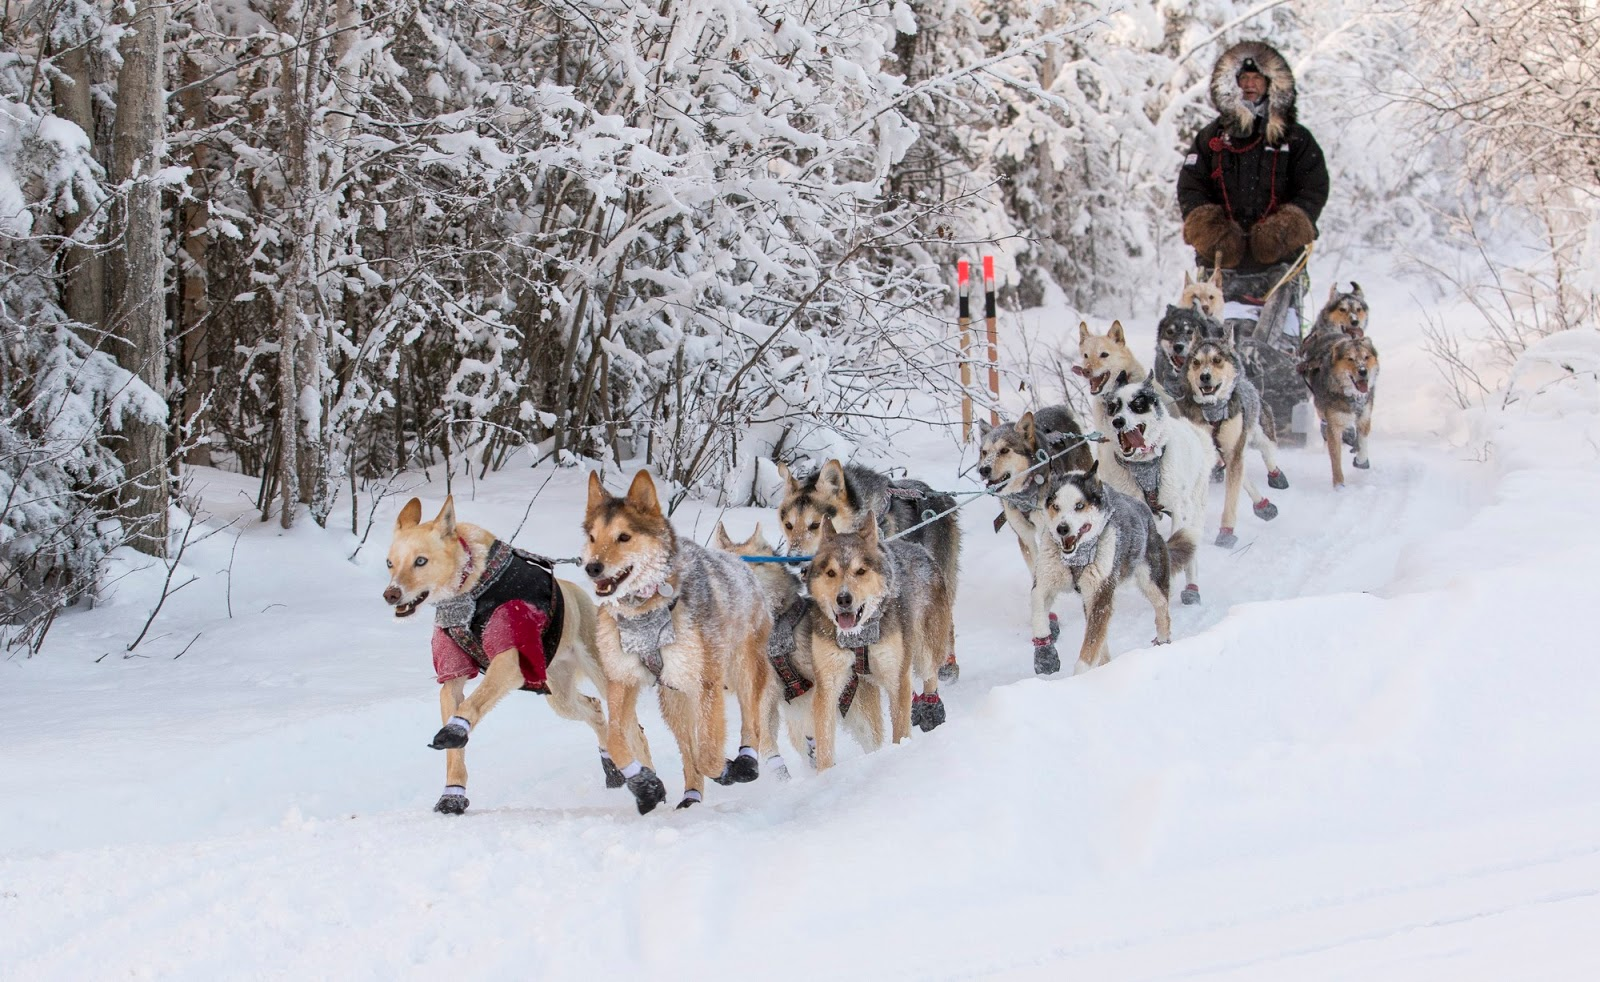 winter carnivals around the world you cannot miss